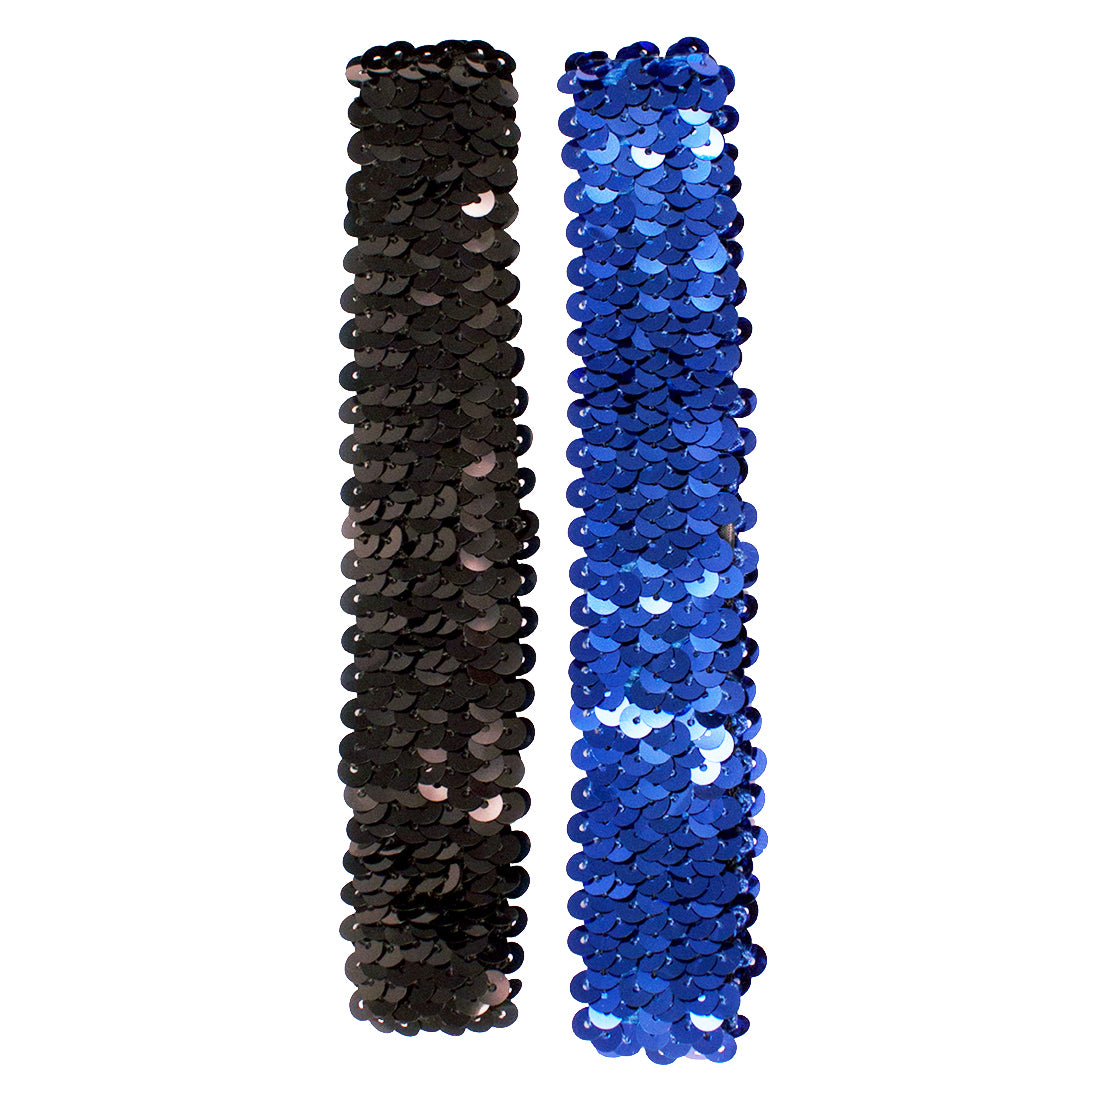 Mia® Spirit Sequin Headbands - black and royal blue color - by #MiaKaminski of Mia Beauty